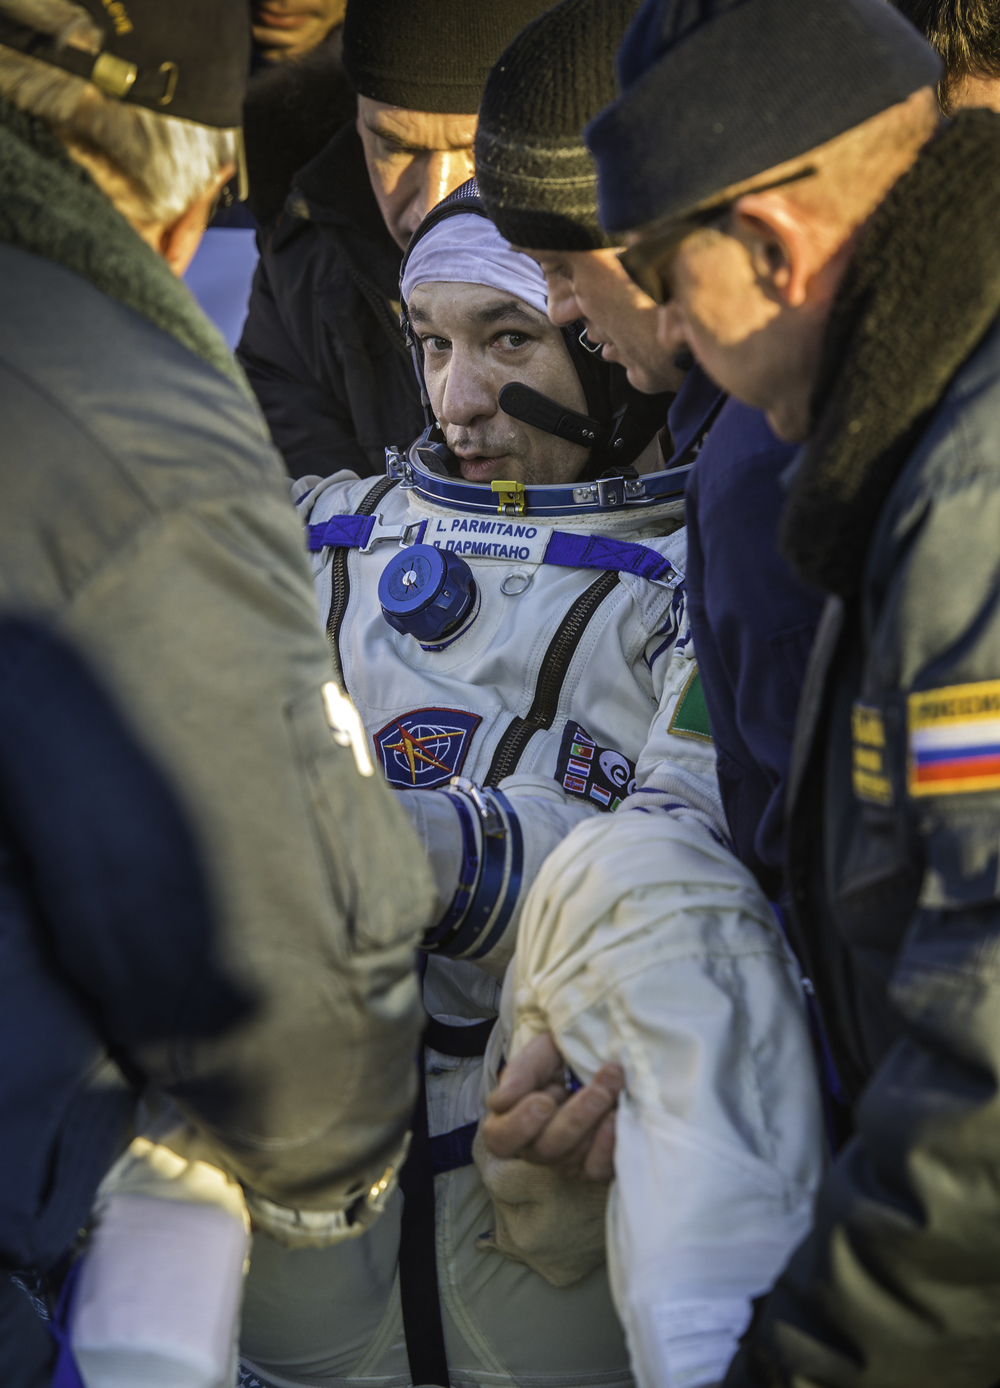 Expedition 37 Luca Parmitano of ESA (European Space Agency) is carried from the Soyuz TMA-09M spacecraft minutes after he landed in a remote area outside the town of Zhezkazgan, Kazakhstan, on Monday, Nov. 11, 2013. Parmitano, Expedition 37 Commander Fyodor Yurchikhin of the Russian Federal Space Agency (Roscosmos) and NASA Flight Engineer Karen Nyberg returned to earth after five and a half months on the International Space Station. (NASA/Carla Cioffi)